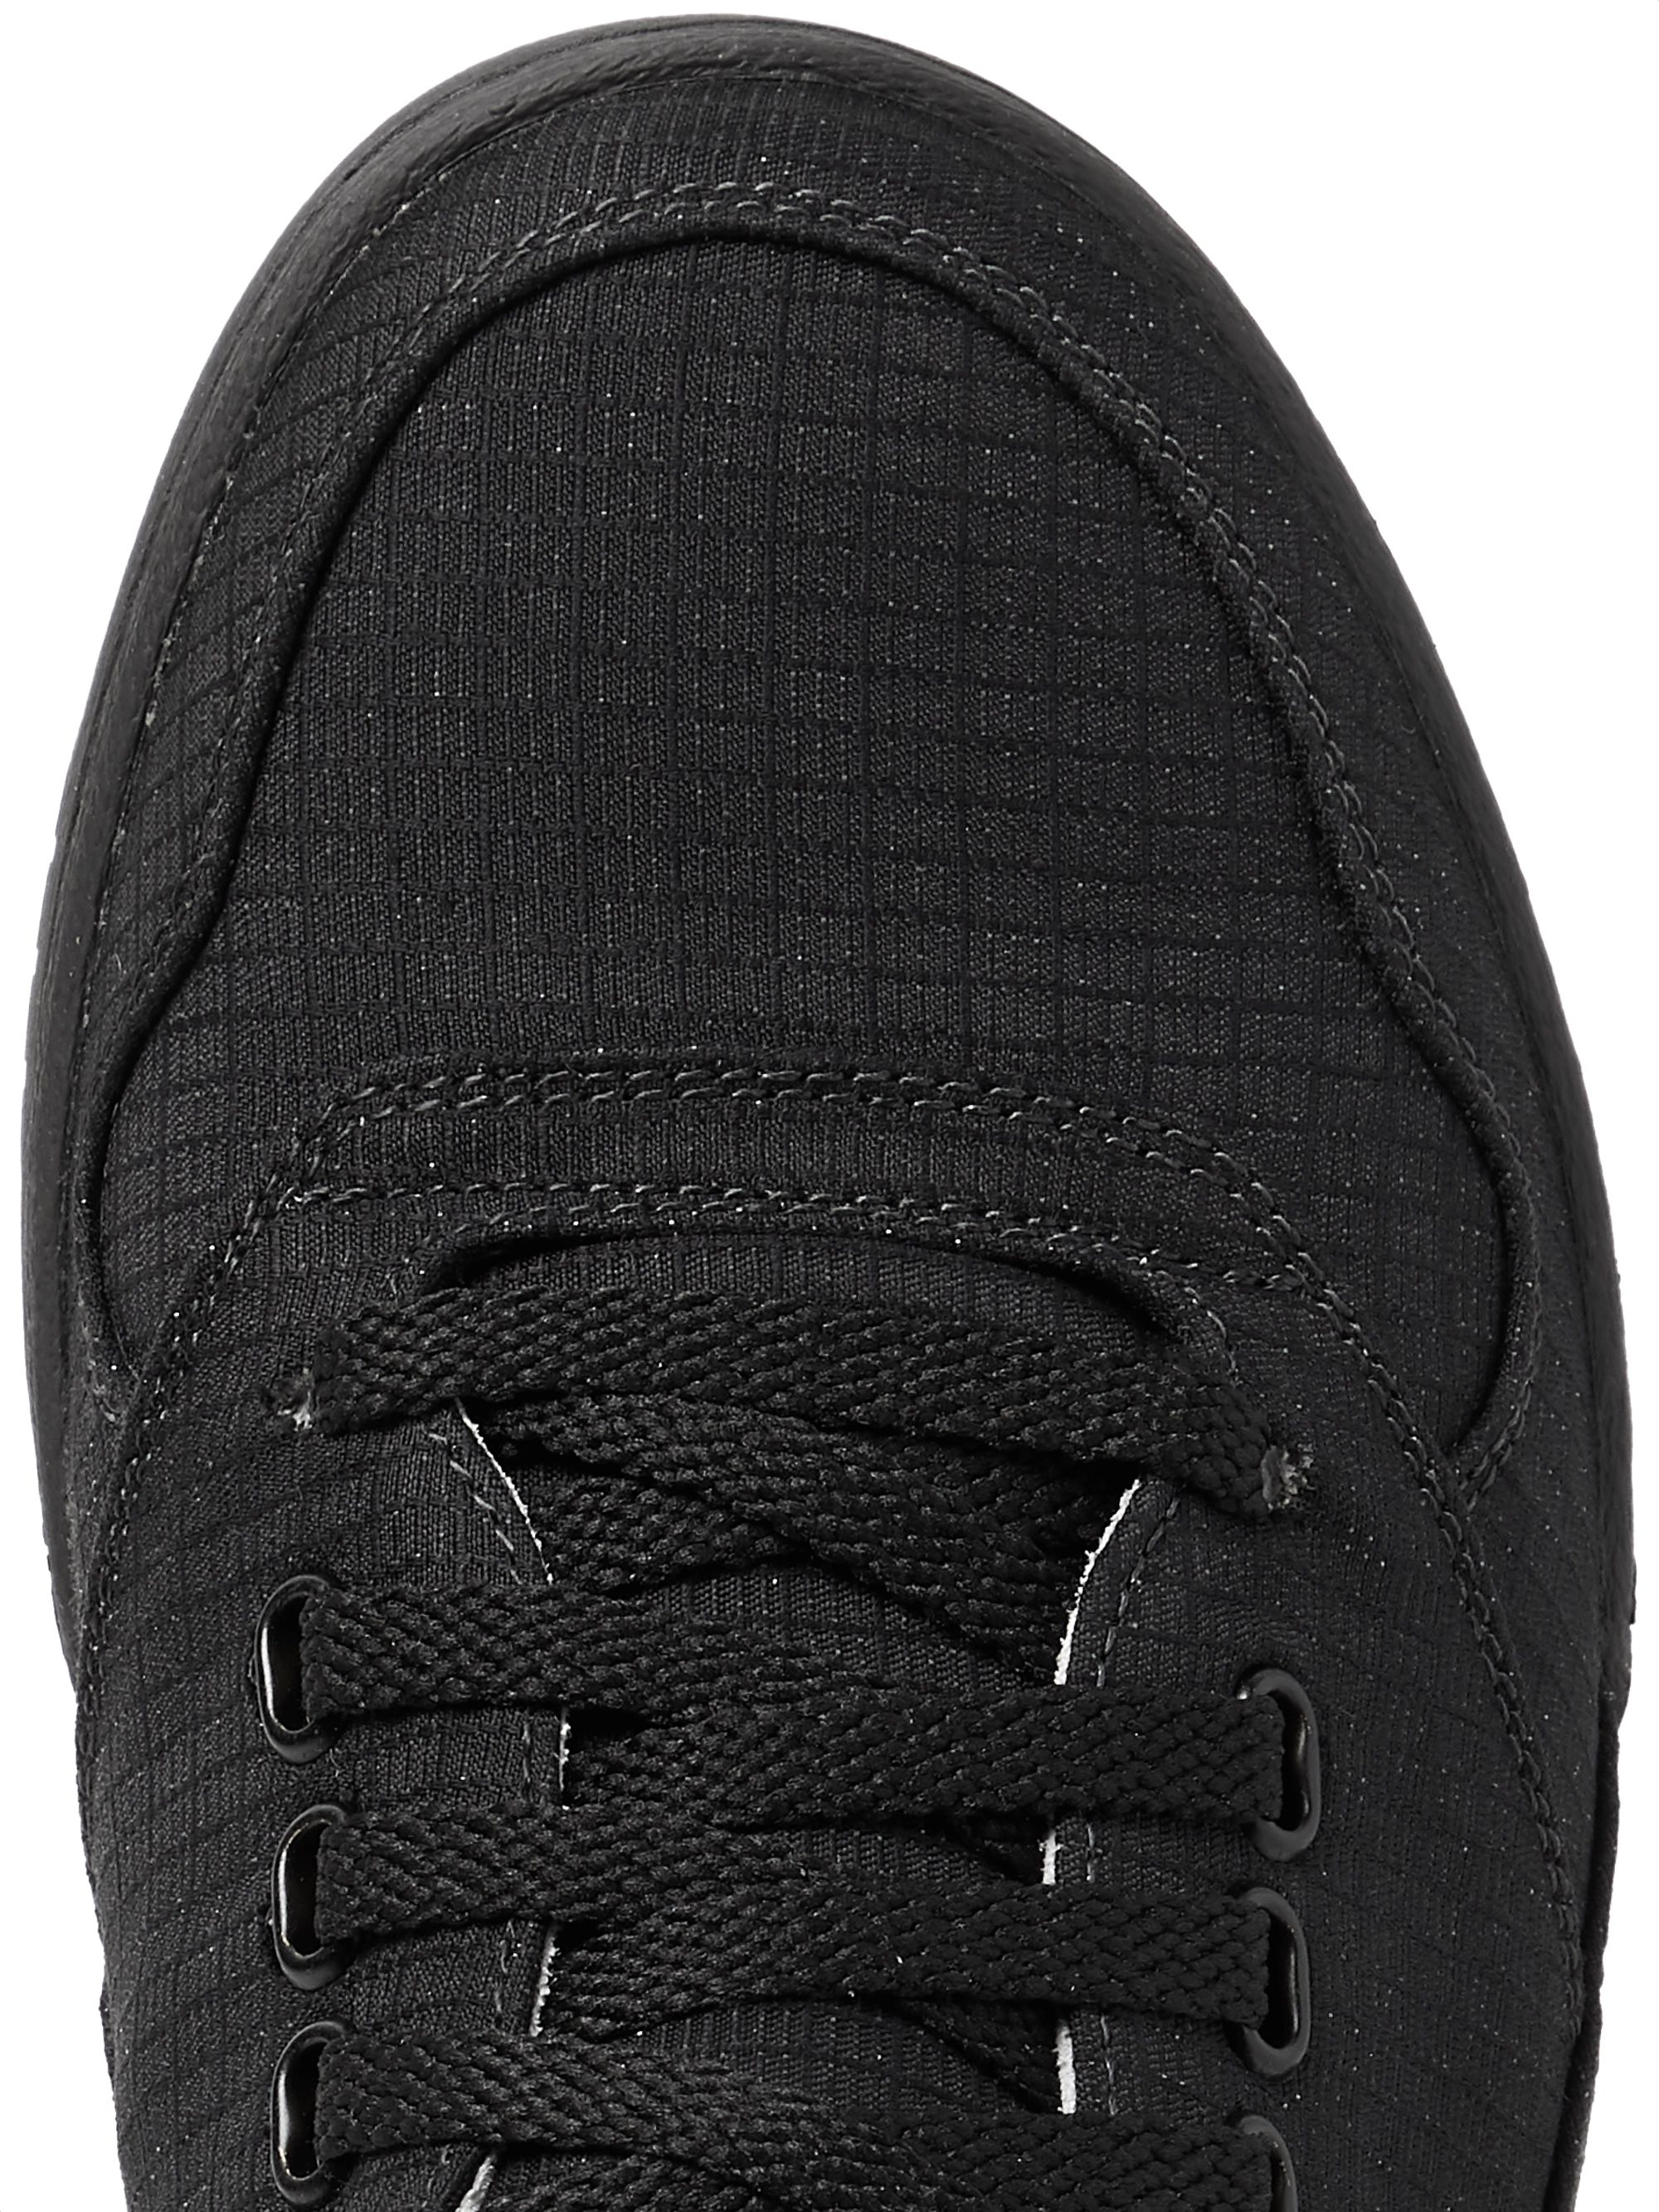 Stone Island + Diemme Reflective Leather-Trimmed Ripstop Sneakers